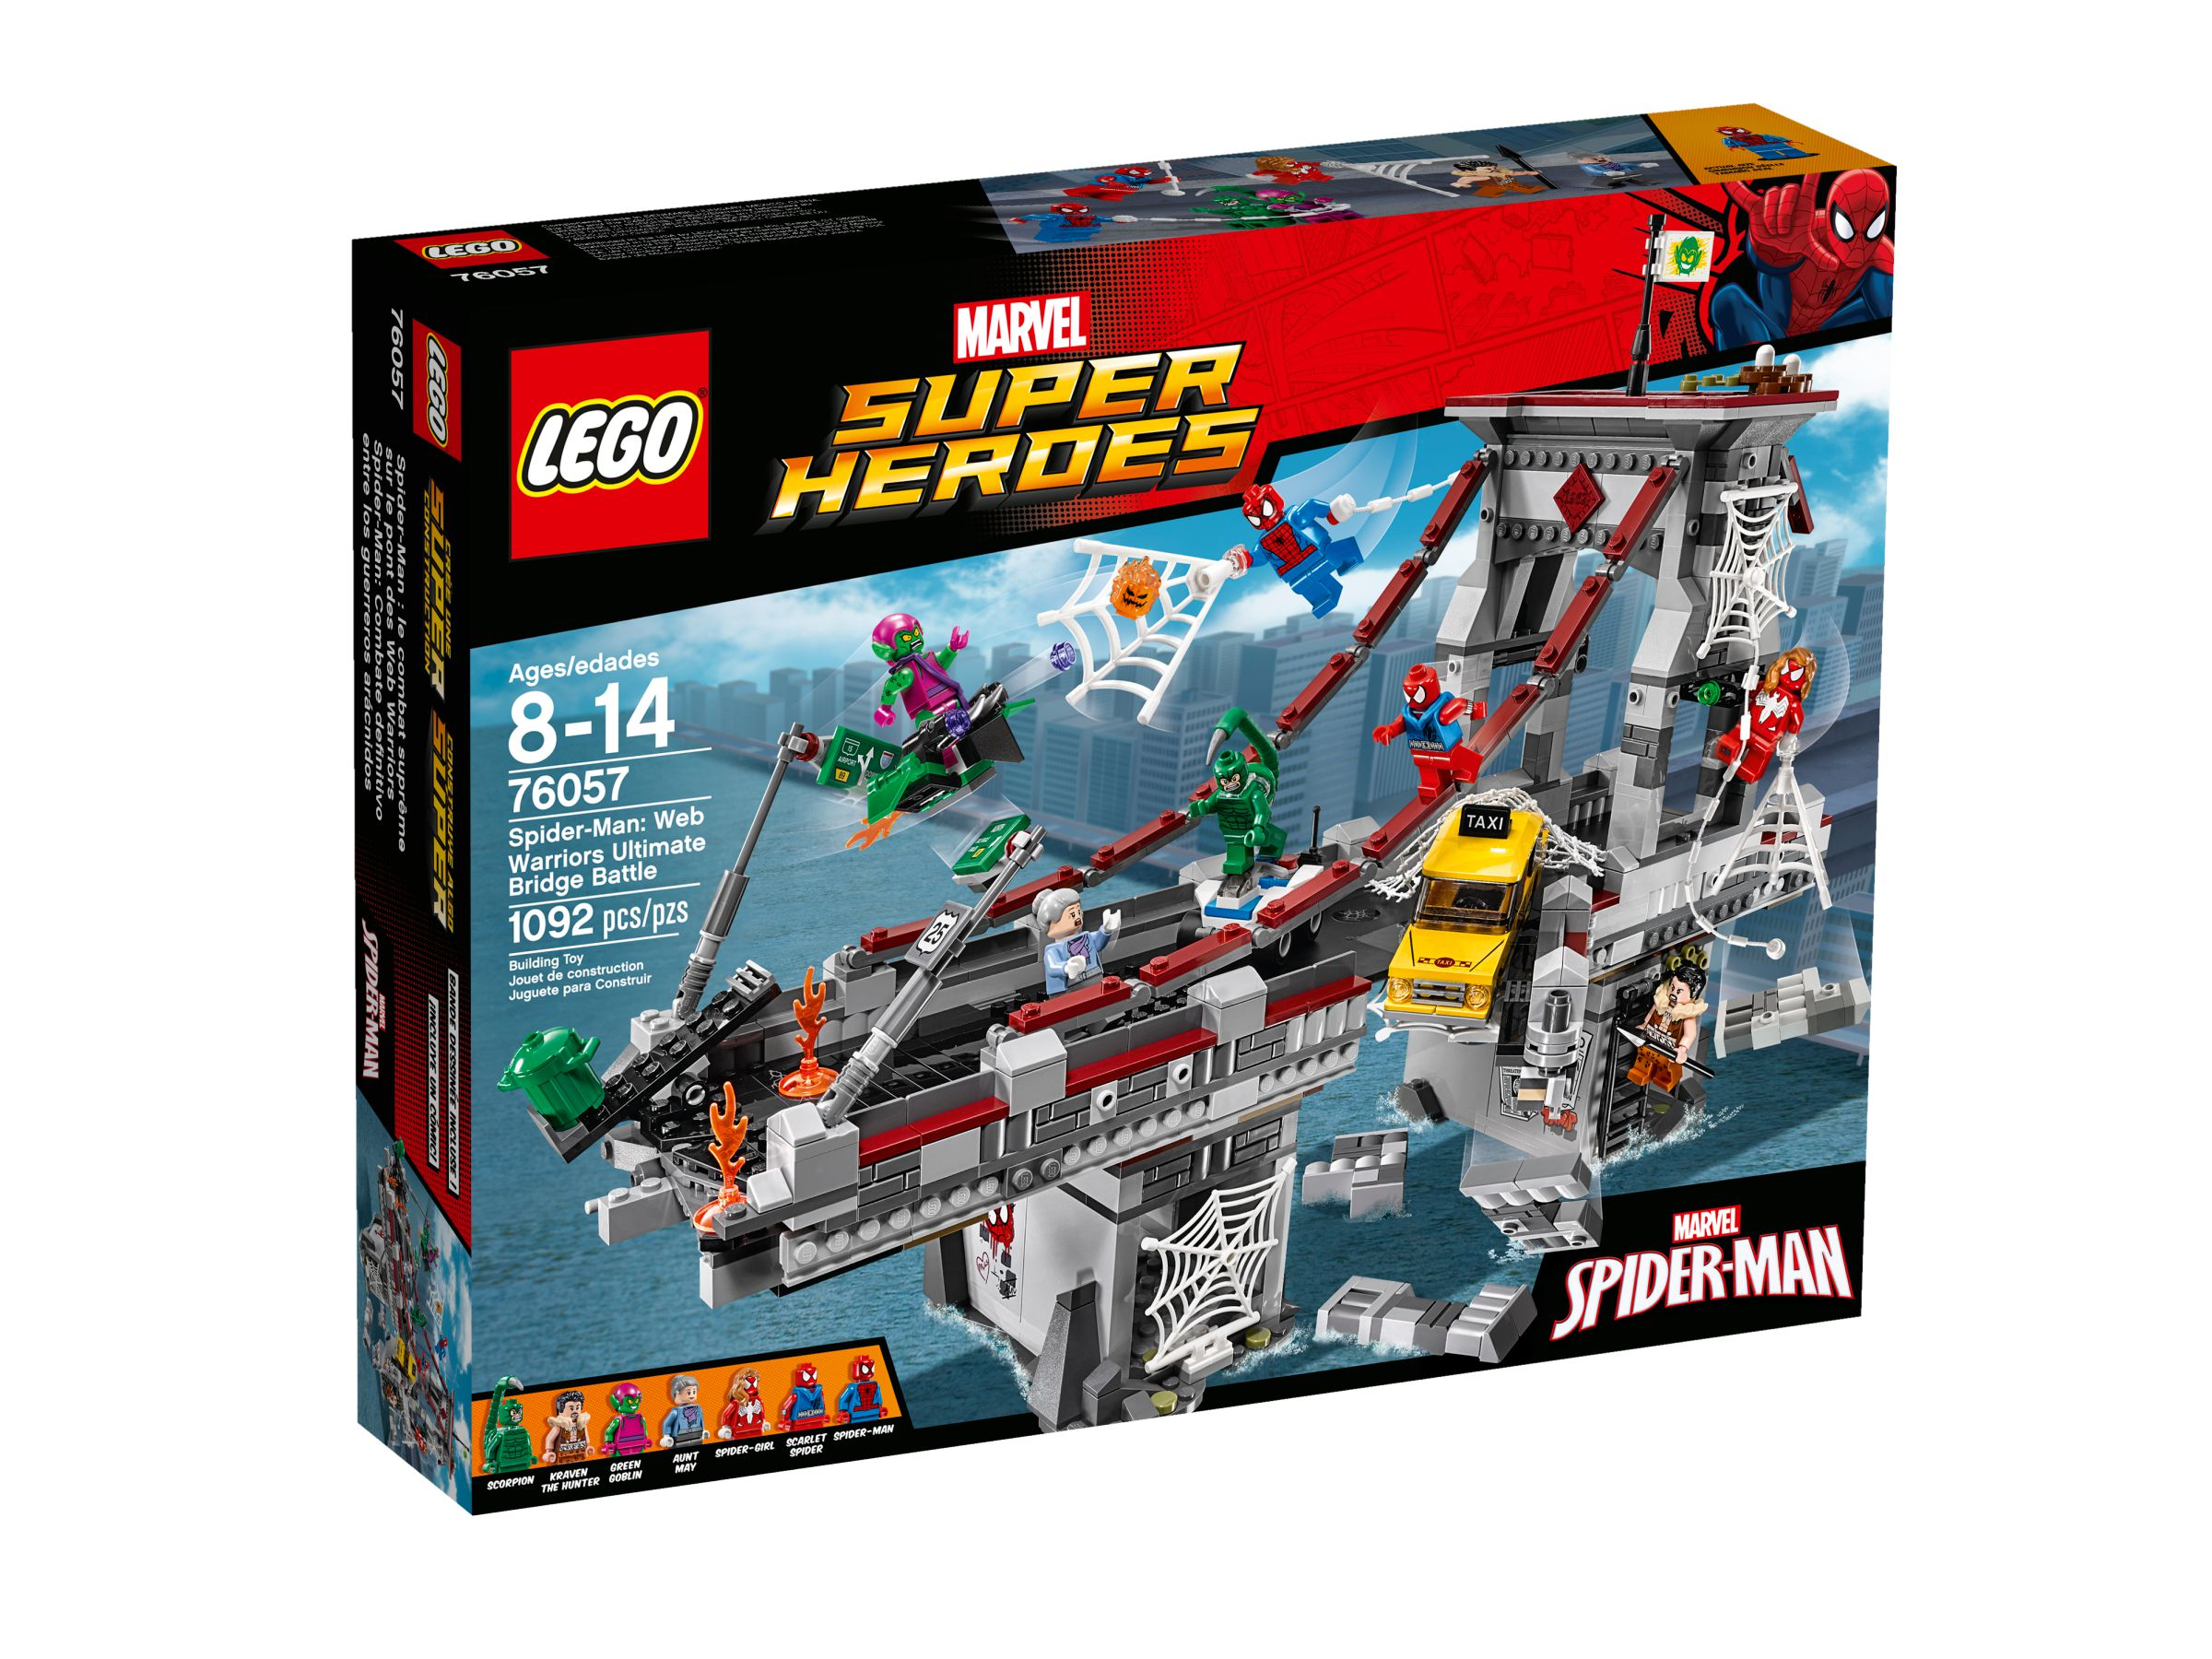 LEGO Super Heroes 76057 Spider-Man: Ultimatives Brückenduell der Web-Warriors LEGO_76057_alt1.jpg